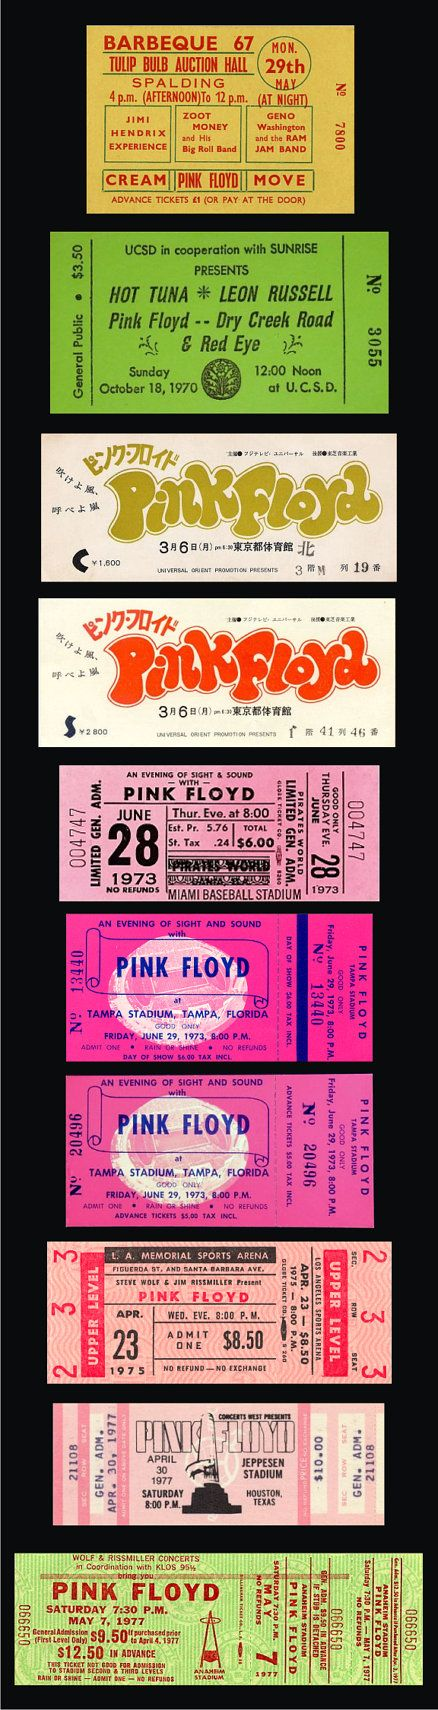 TEN • 1966-67 PINK FLOYD                                            Unused Concert Tickets  -Paper Replicas by thundertix~Made in the USA.